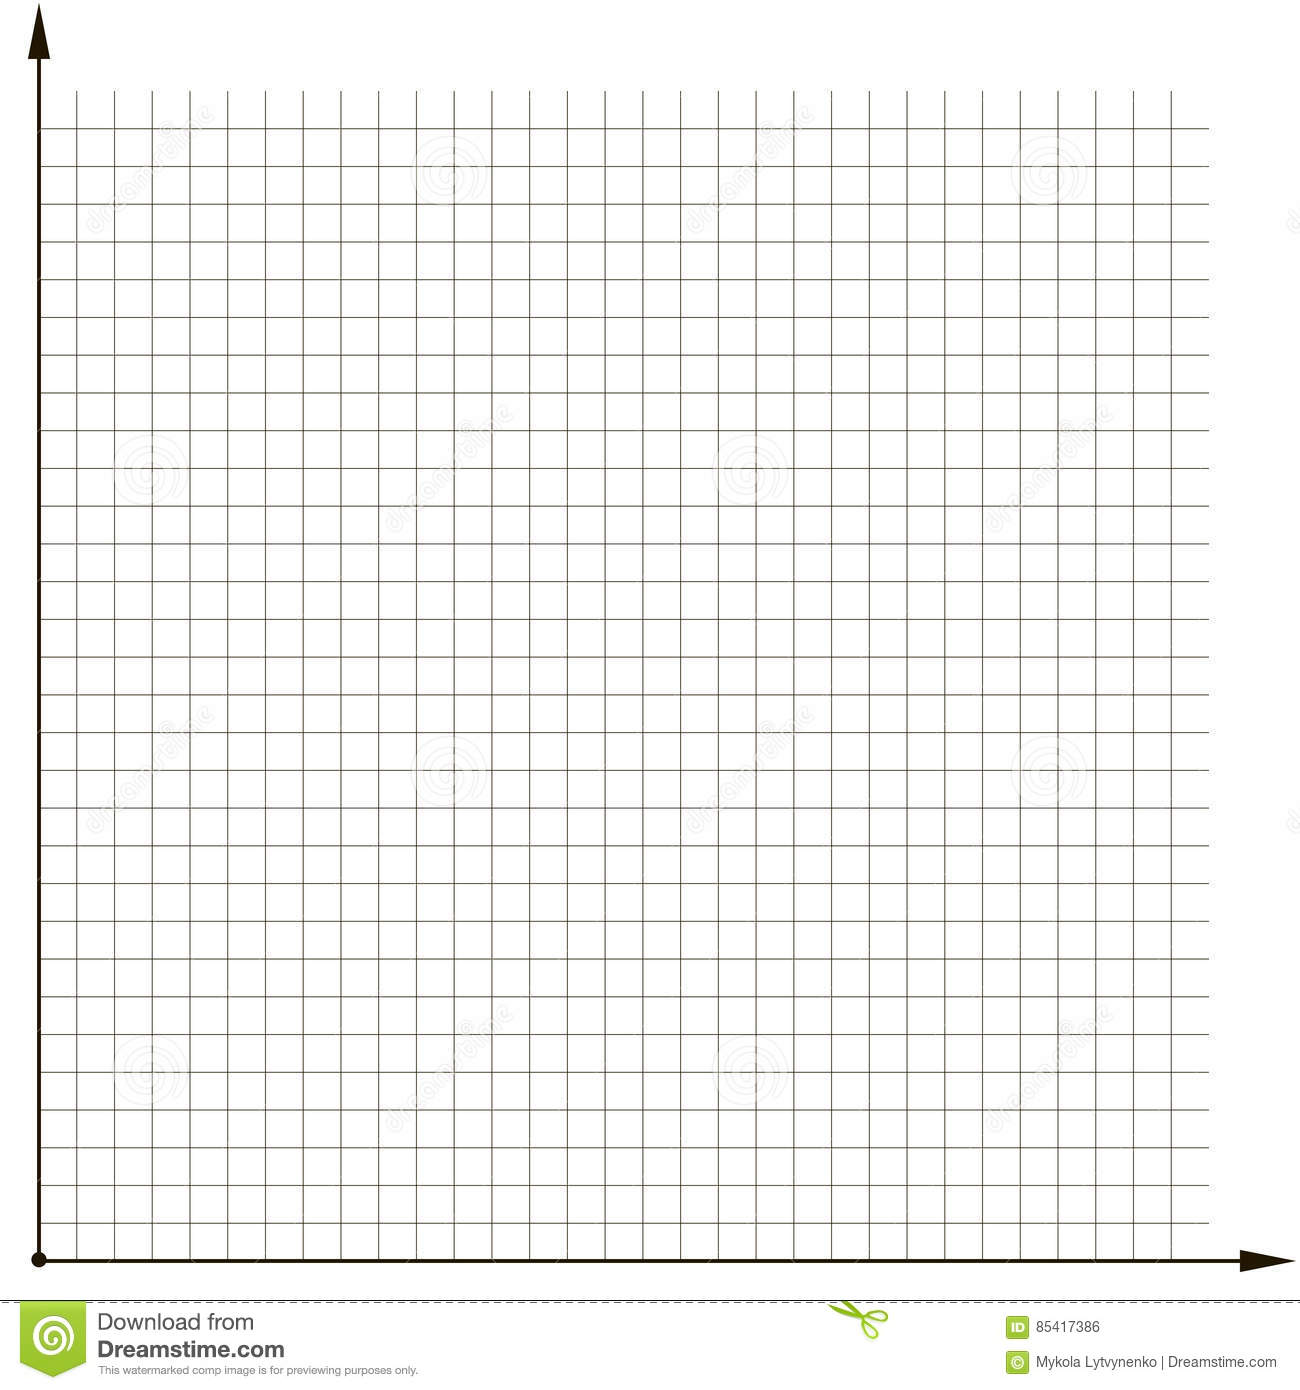 Coordinate grid worksheet doc